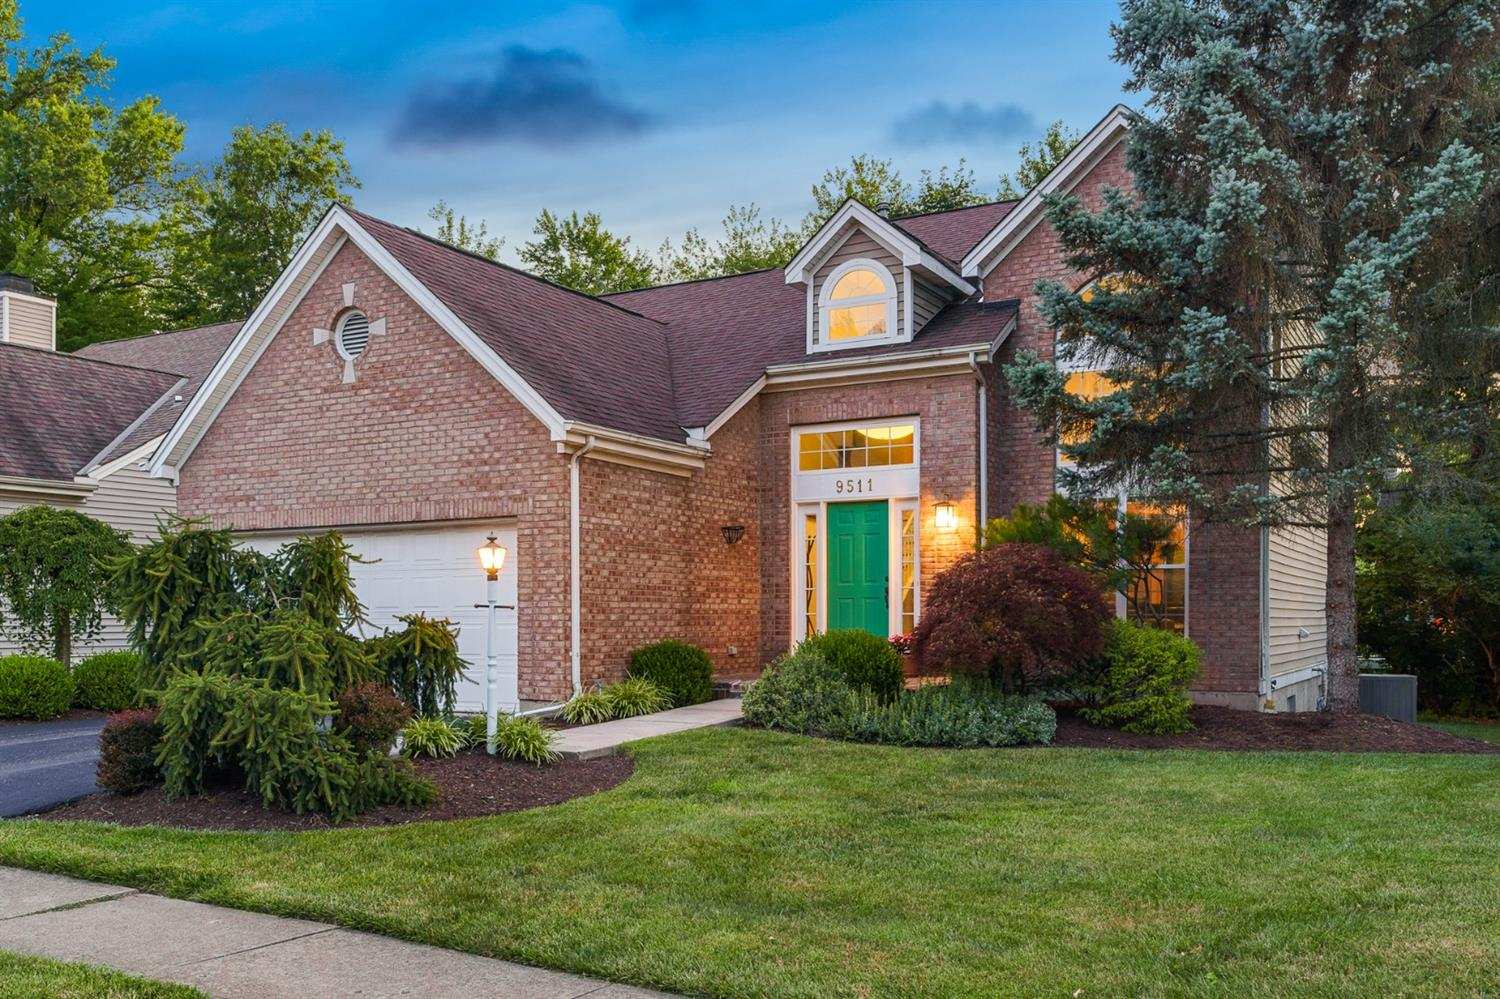 Property for sale at 9511 Carriage Run Circle, Deerfield Twp.,  Ohio 45140